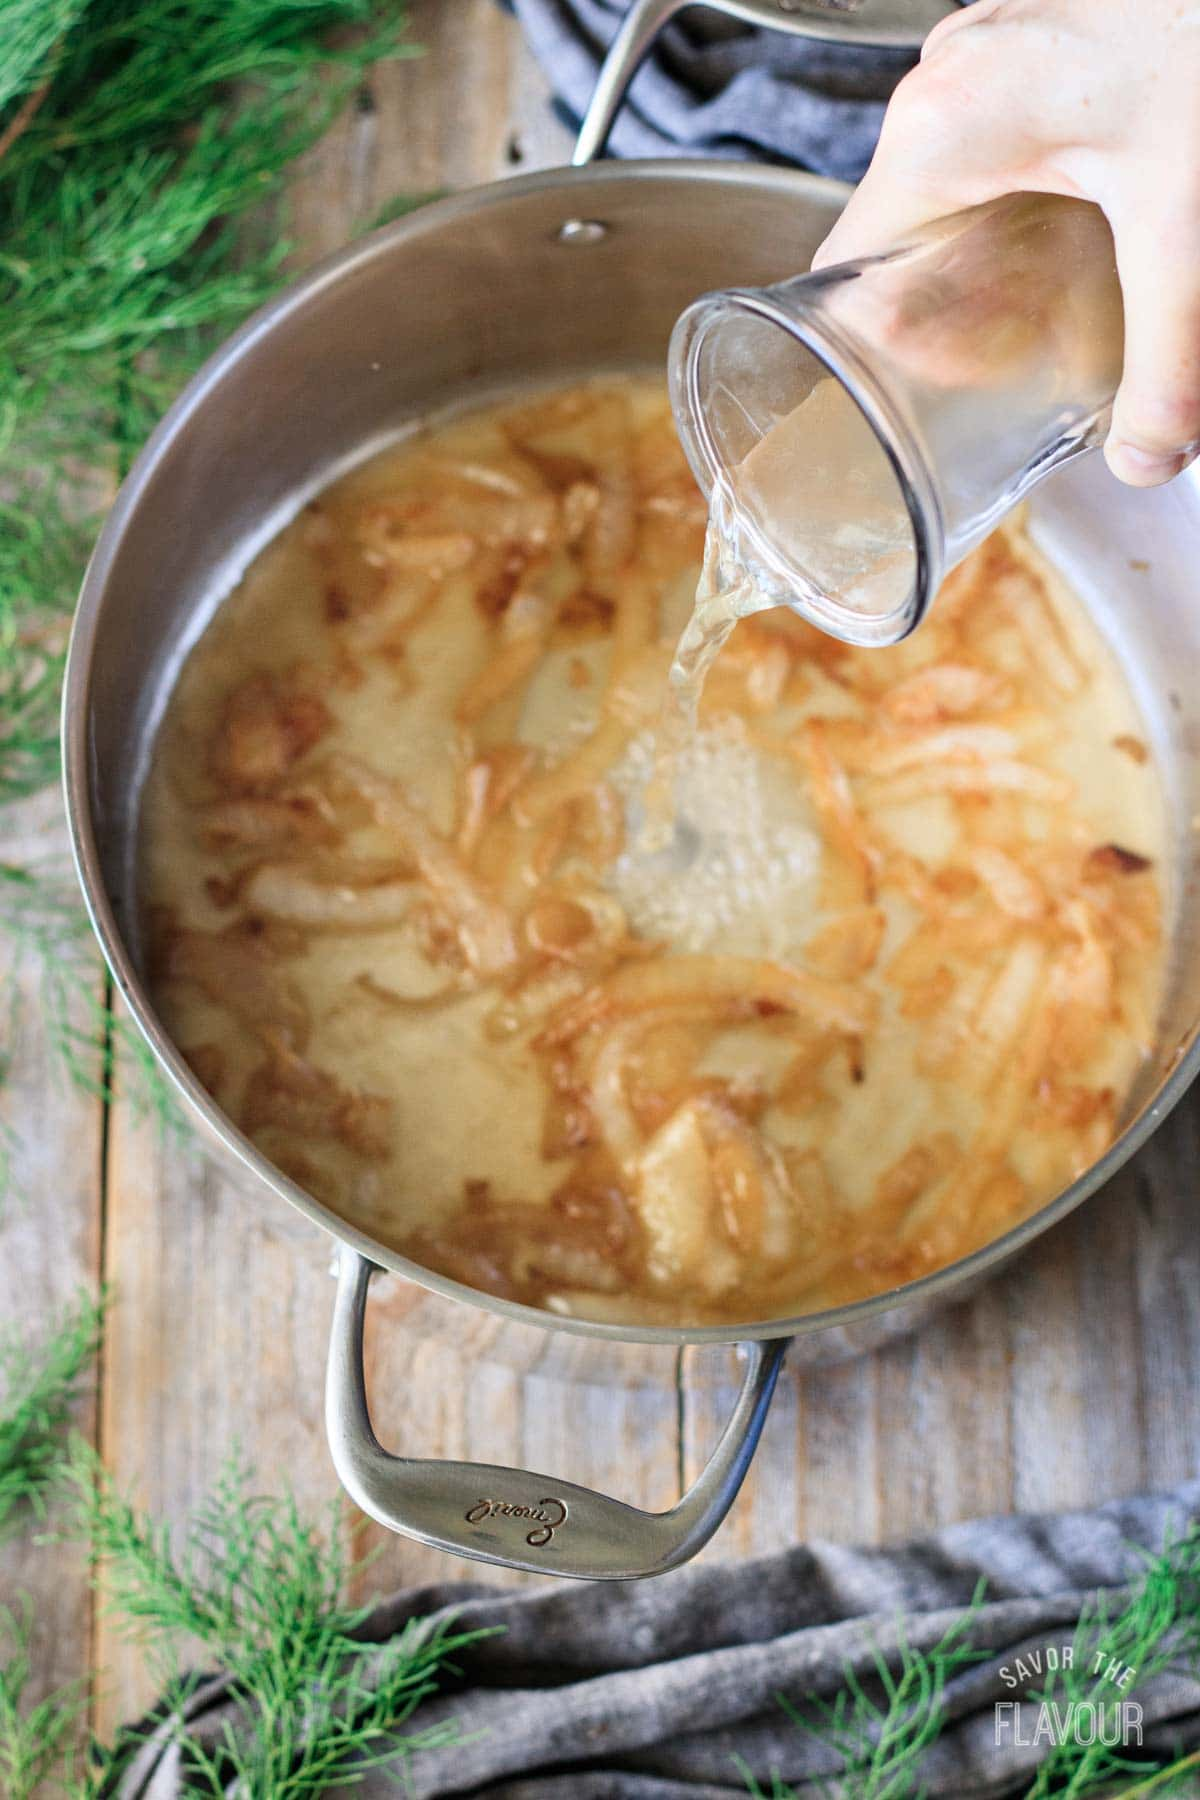 pouring chicken broth into a pot of cooked onions